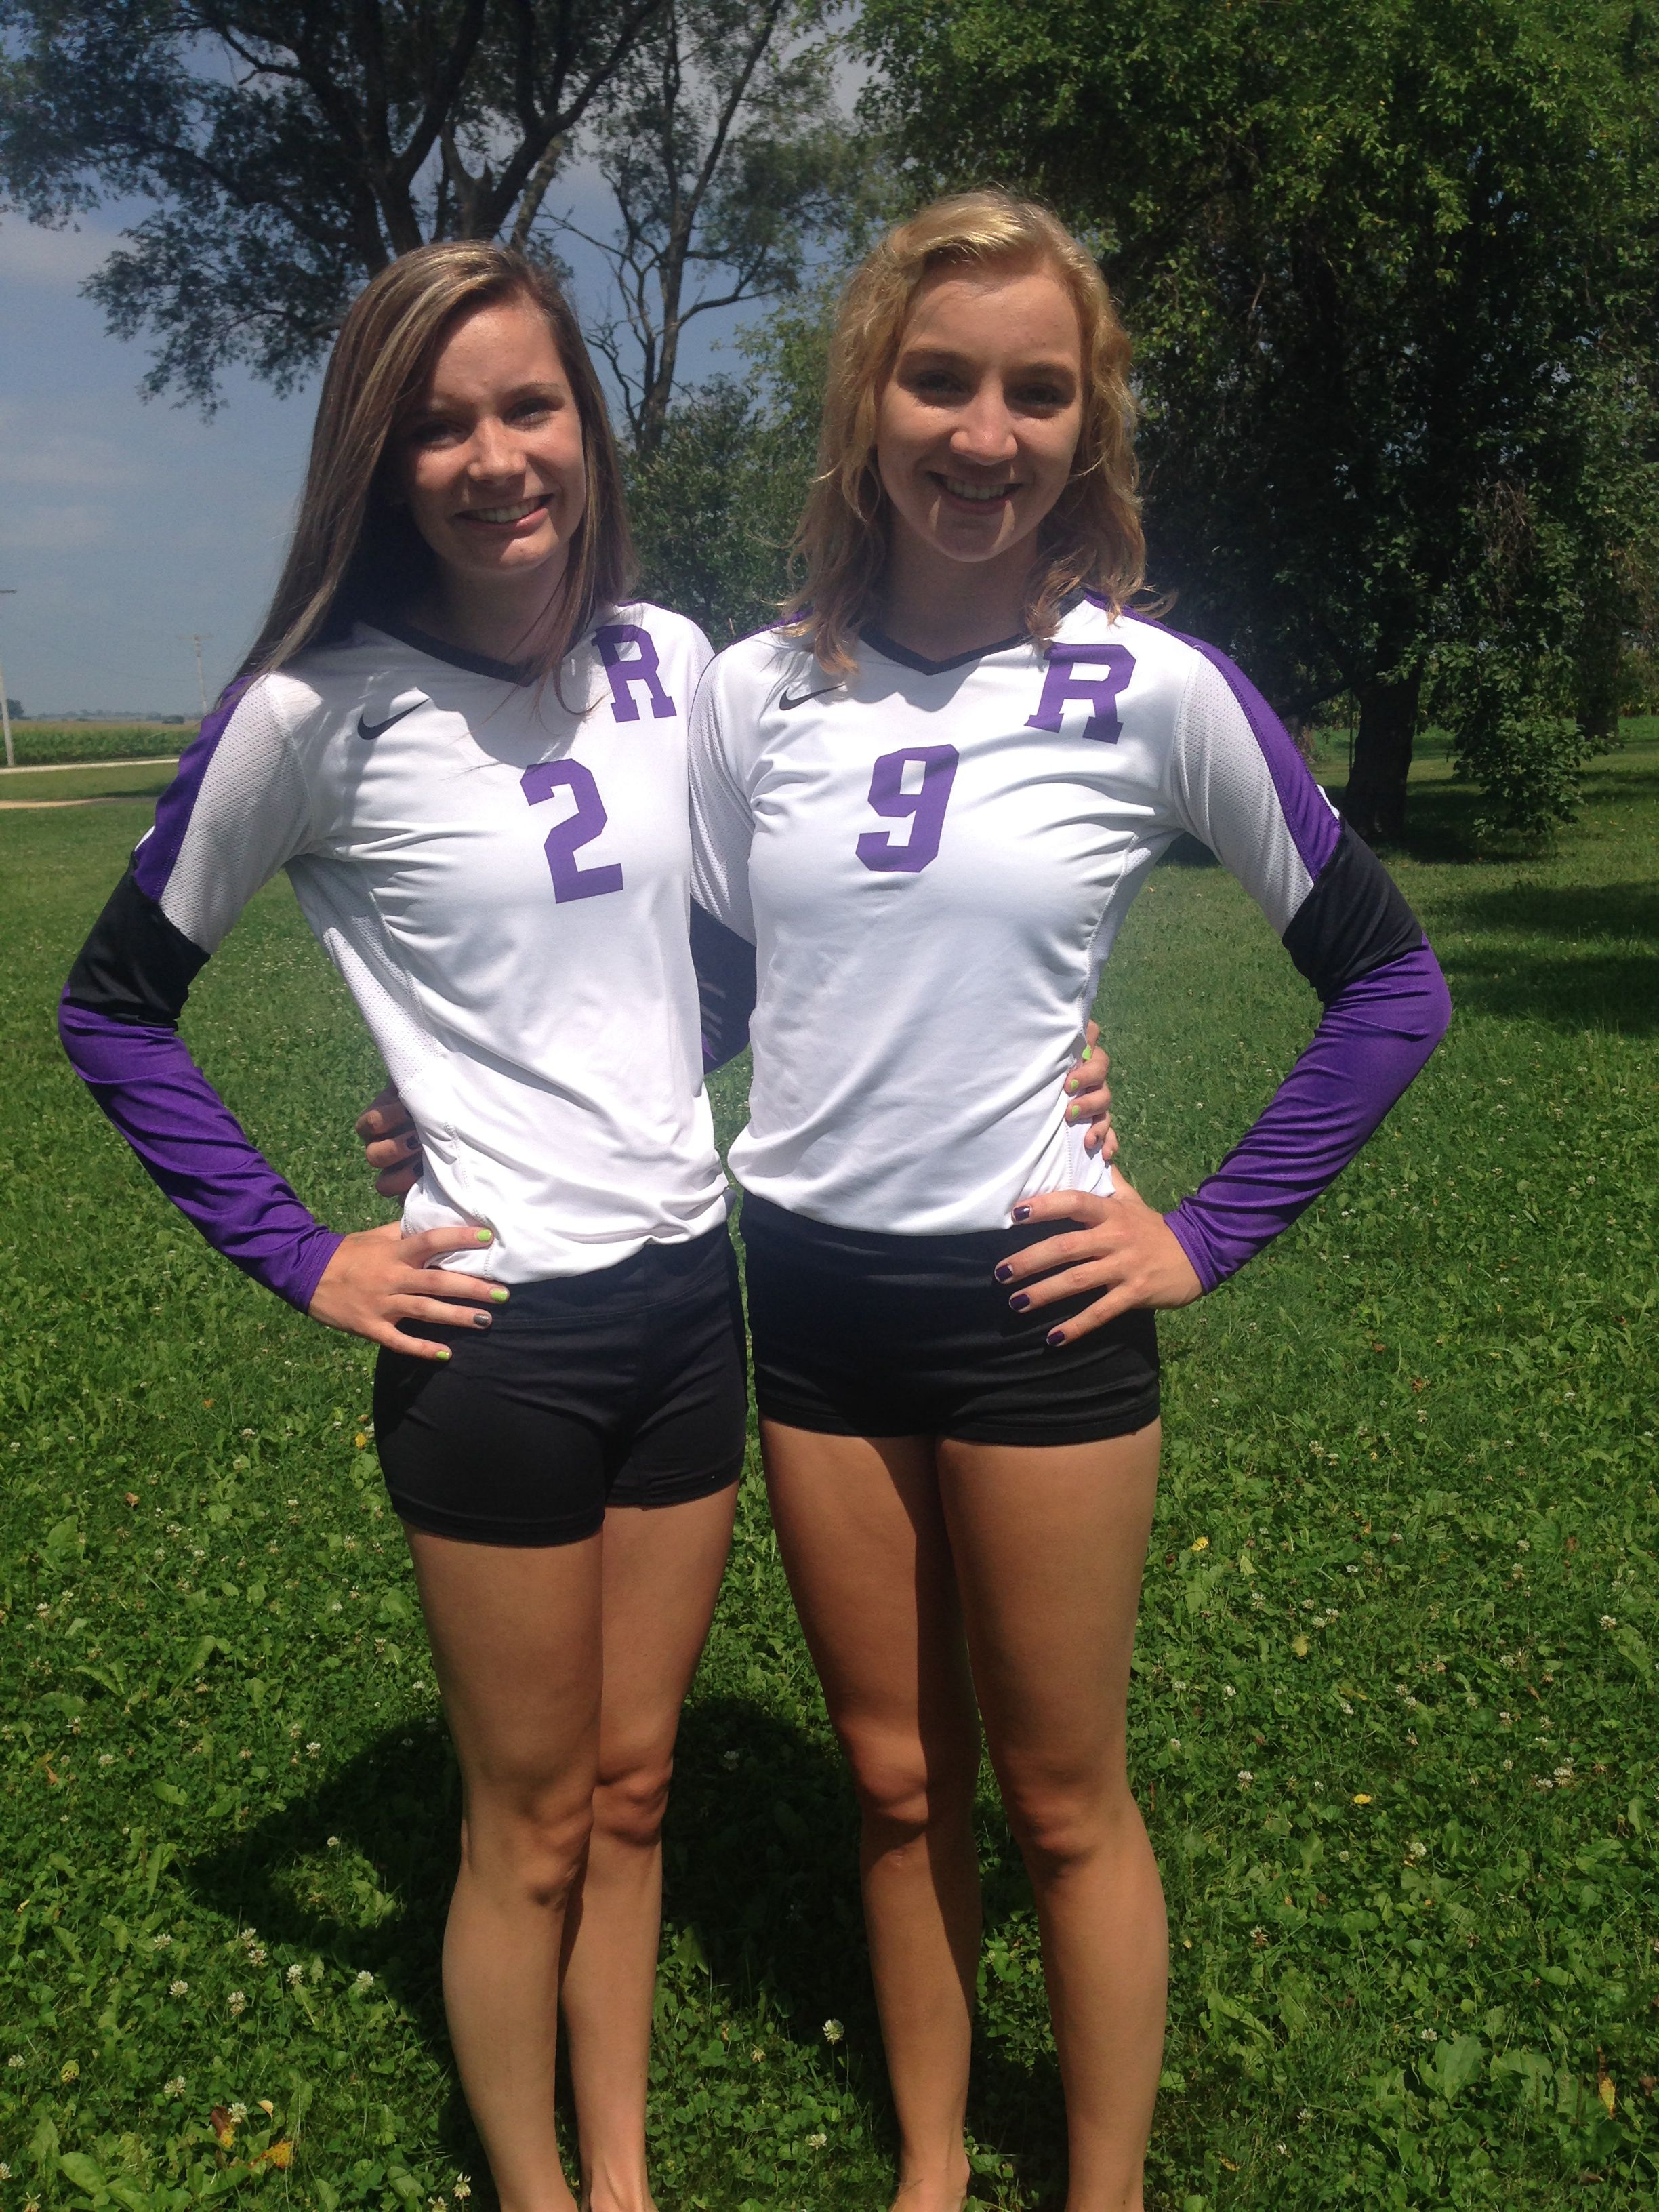 Volleyball uniforms for teams hot and sexy